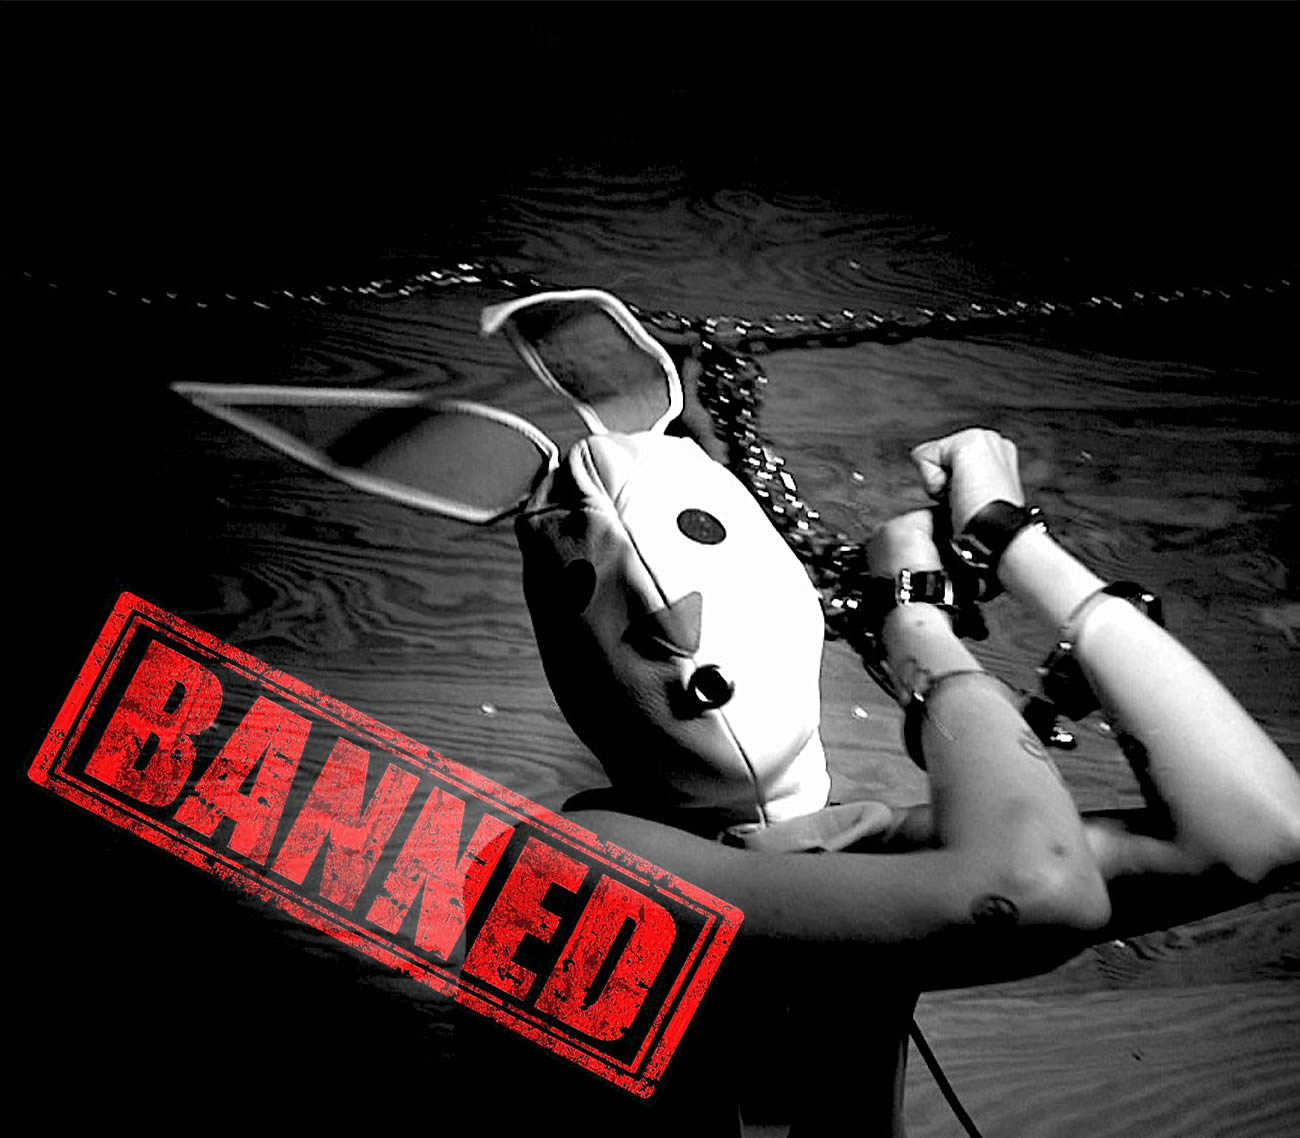 Banned! 5 Movies that Disturbed the Censors